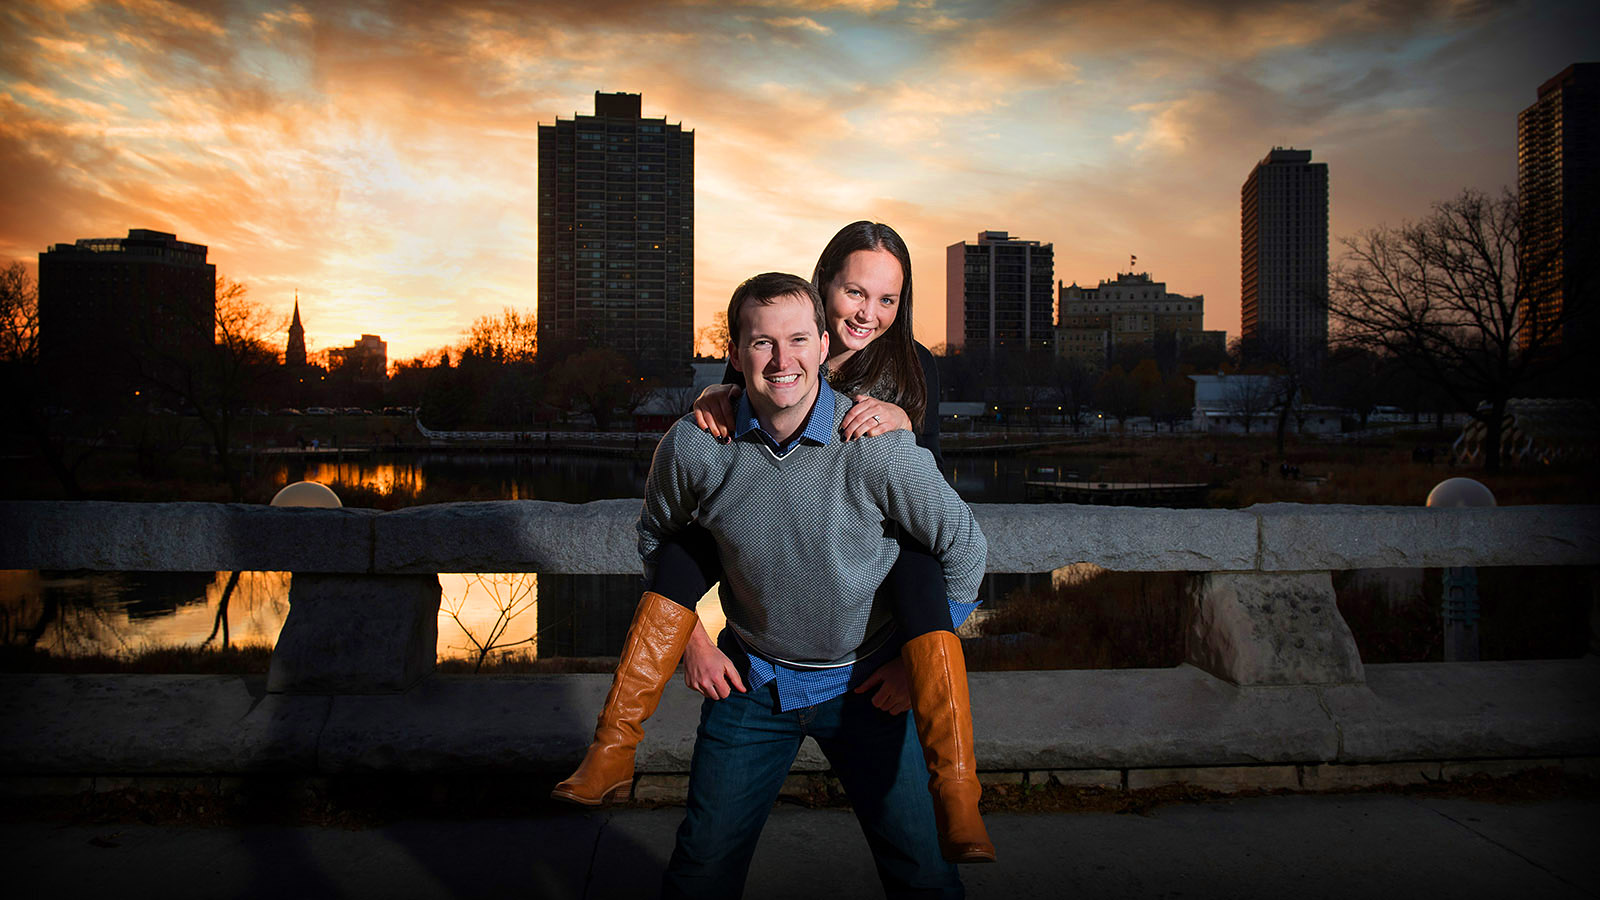 Chicago Sunset Engagement Session Photo Saturated